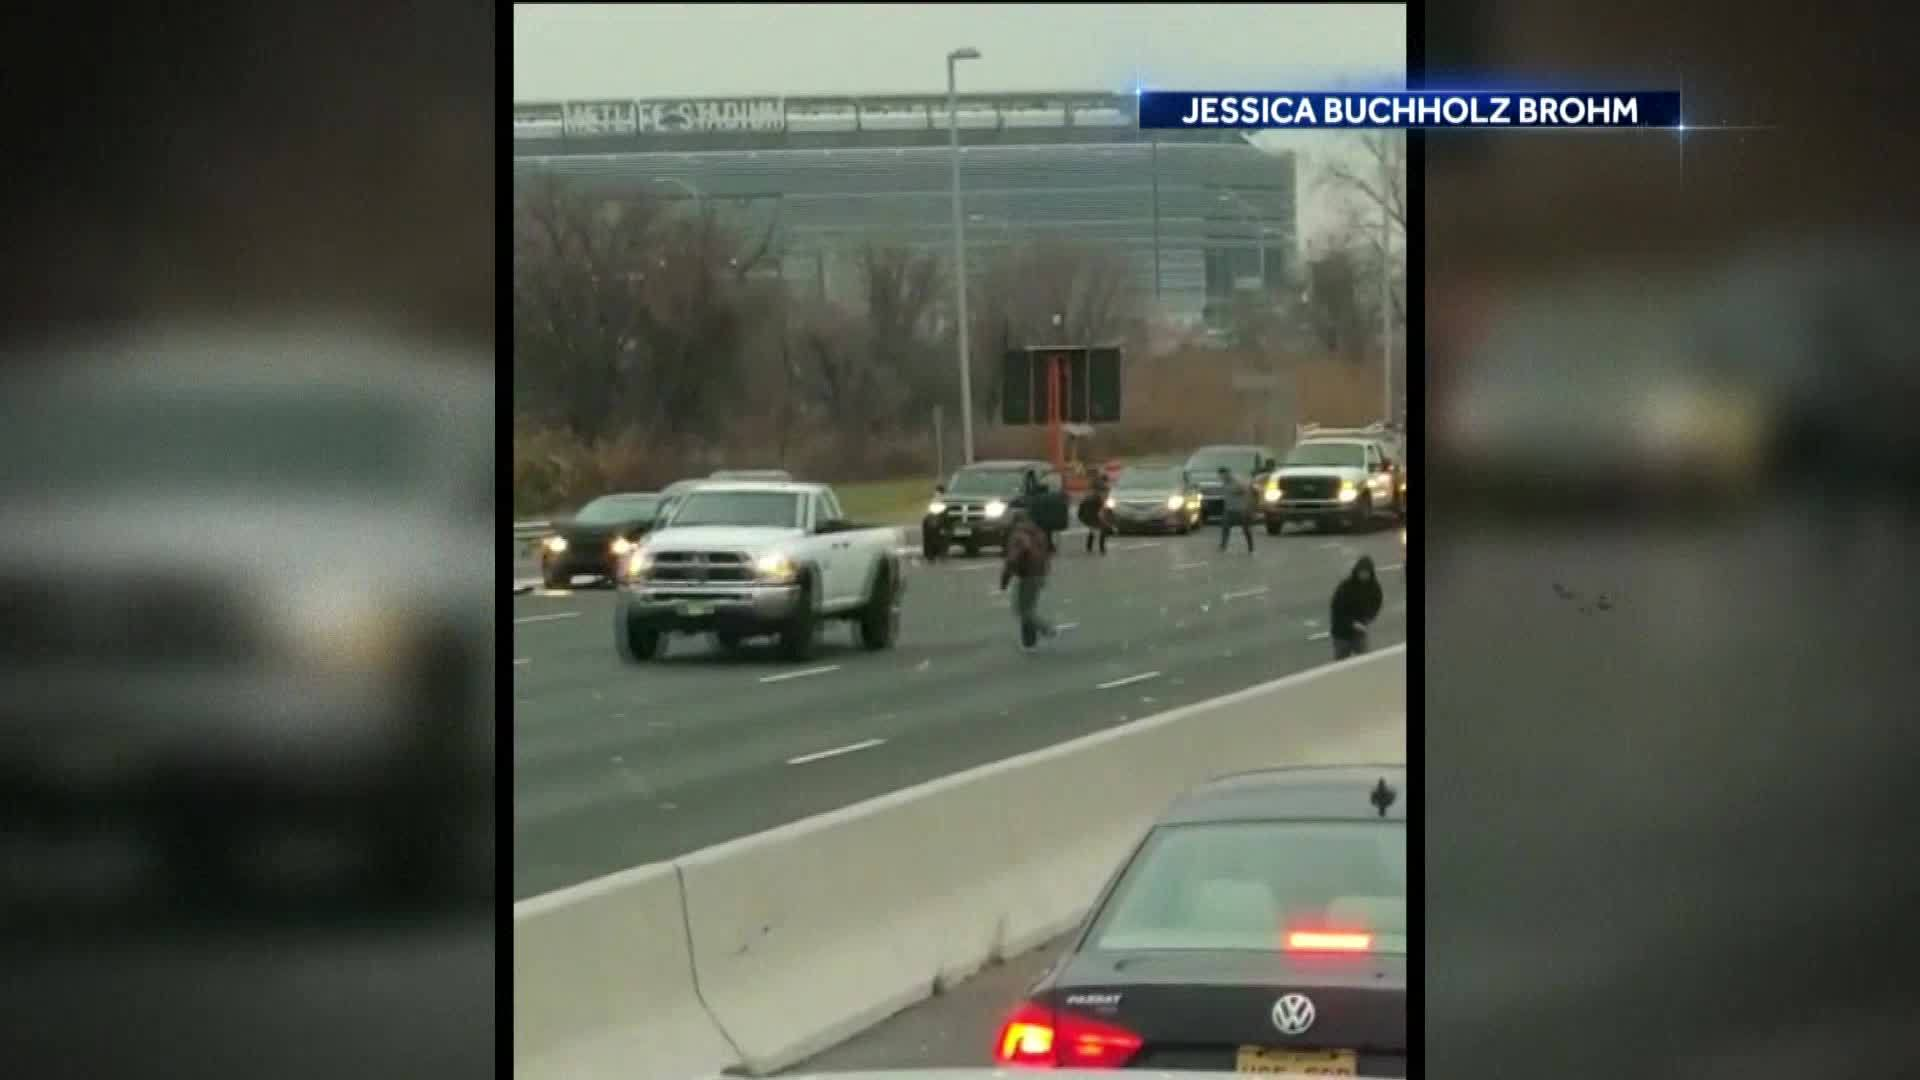 Over__500K_spilled_from_armored_truck____7_20181215040537